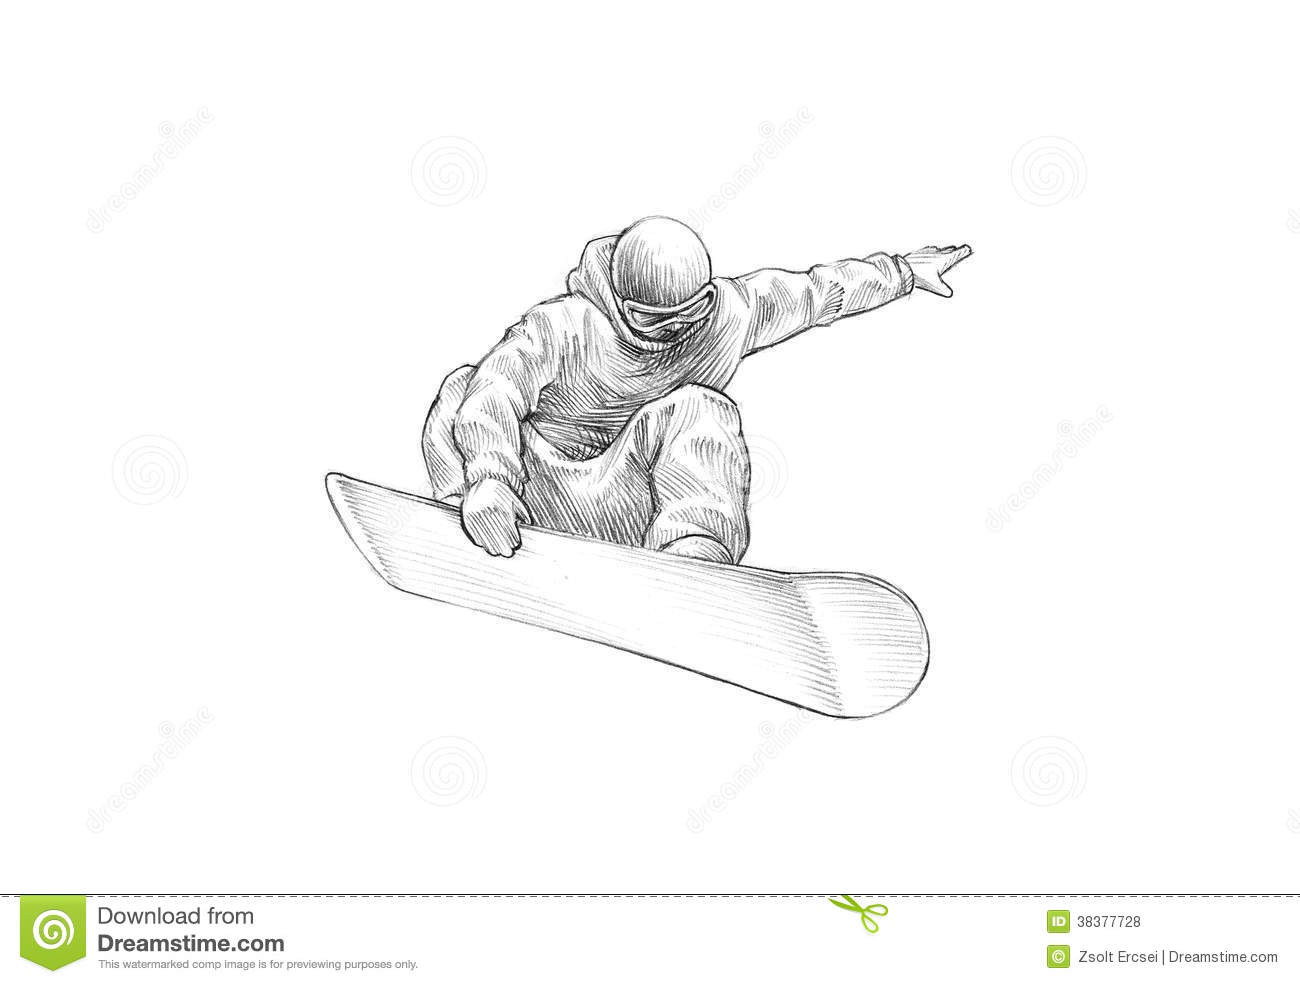 Snowboarder drawing